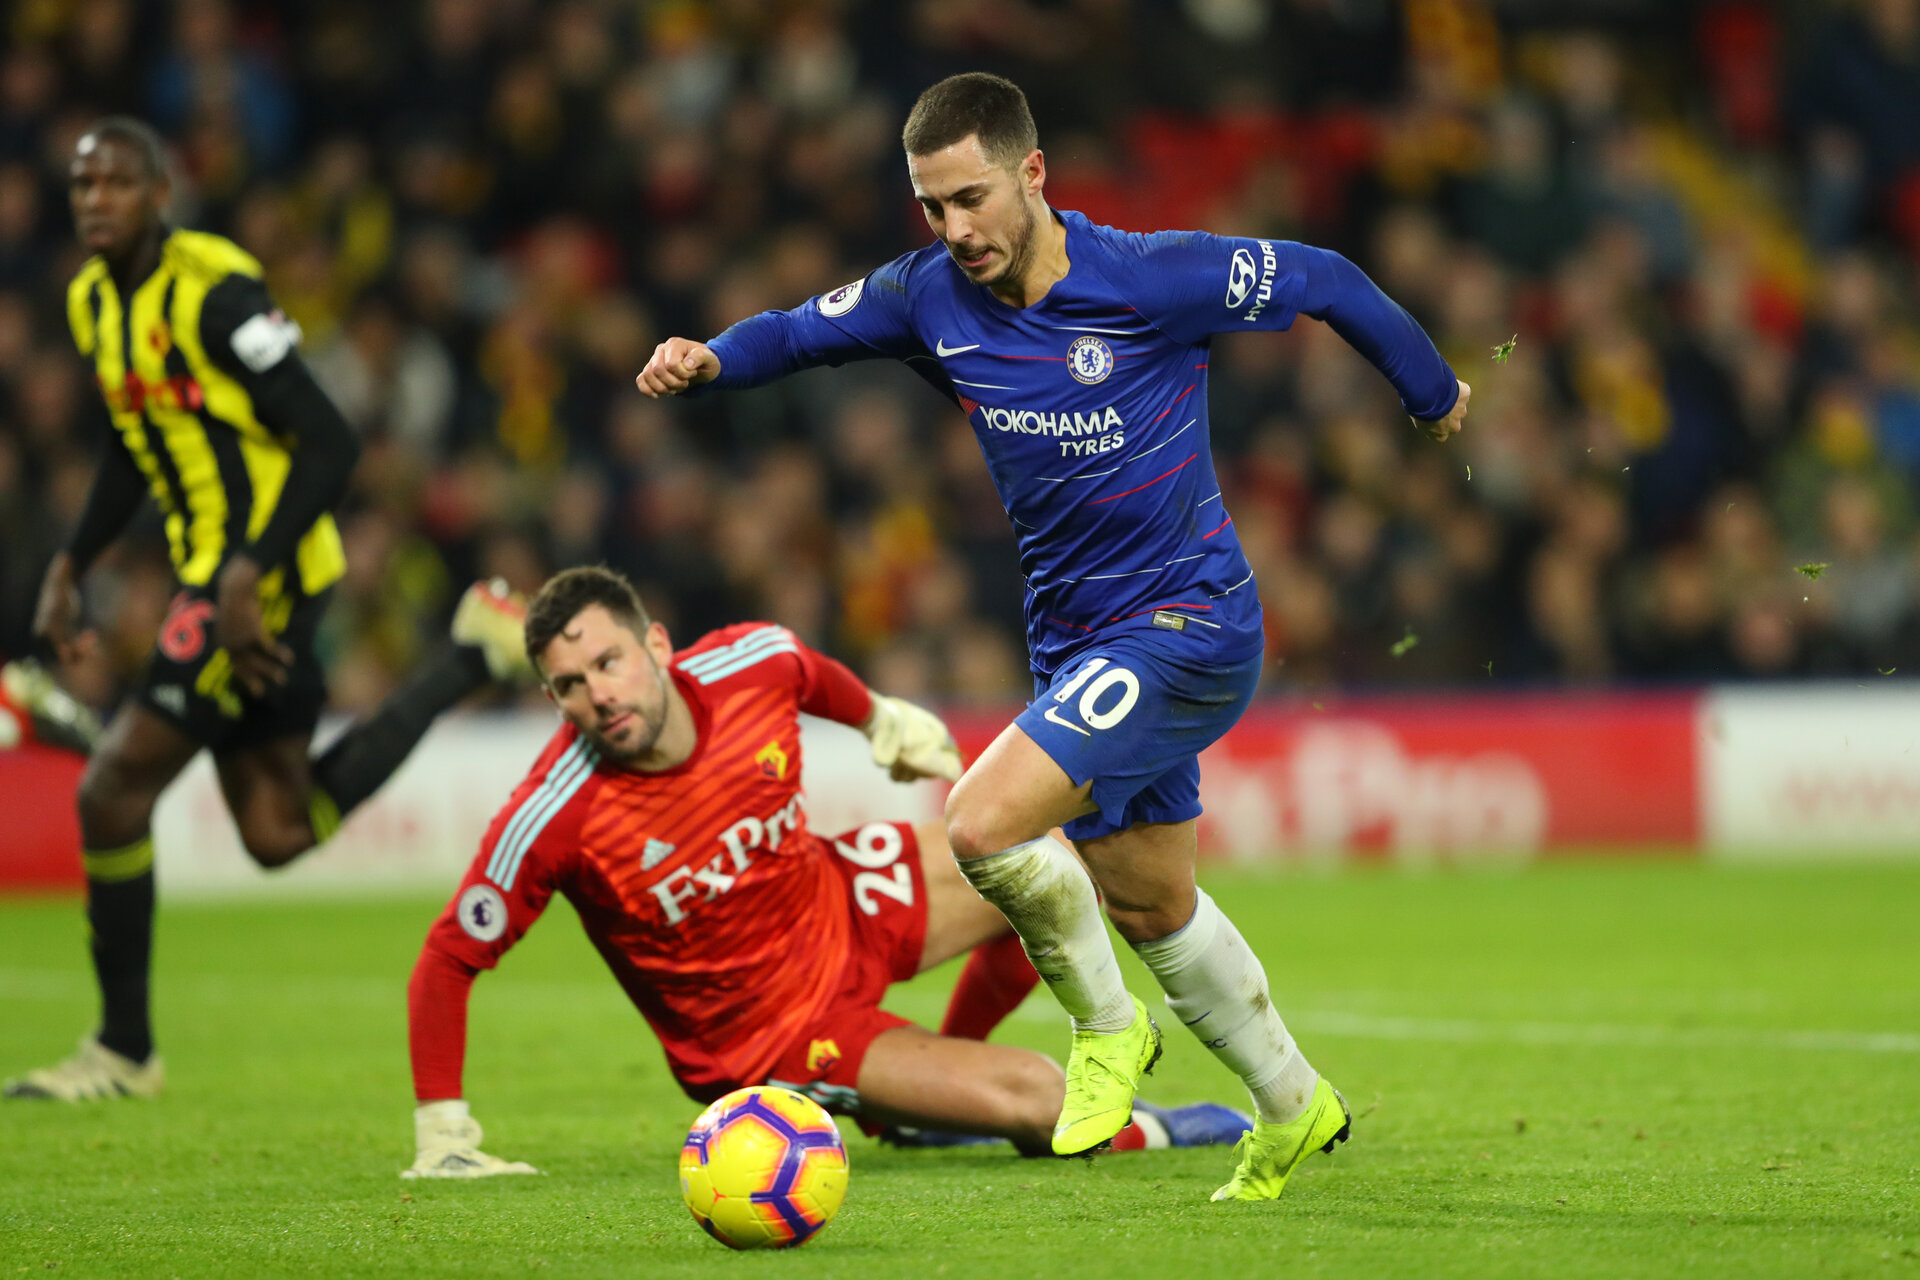 WATFORD, ENGLAND - DECEMBER 26:  Eden Hazard of Chelsea runs to score his team's first goal past Ben Foster of Watford during the Premier League match between Watford FC and Chelsea FC at Vicarage Road on December 26, 2018 in Watford, United Kingdom.  (Photo by Warren Little/Getty Images)